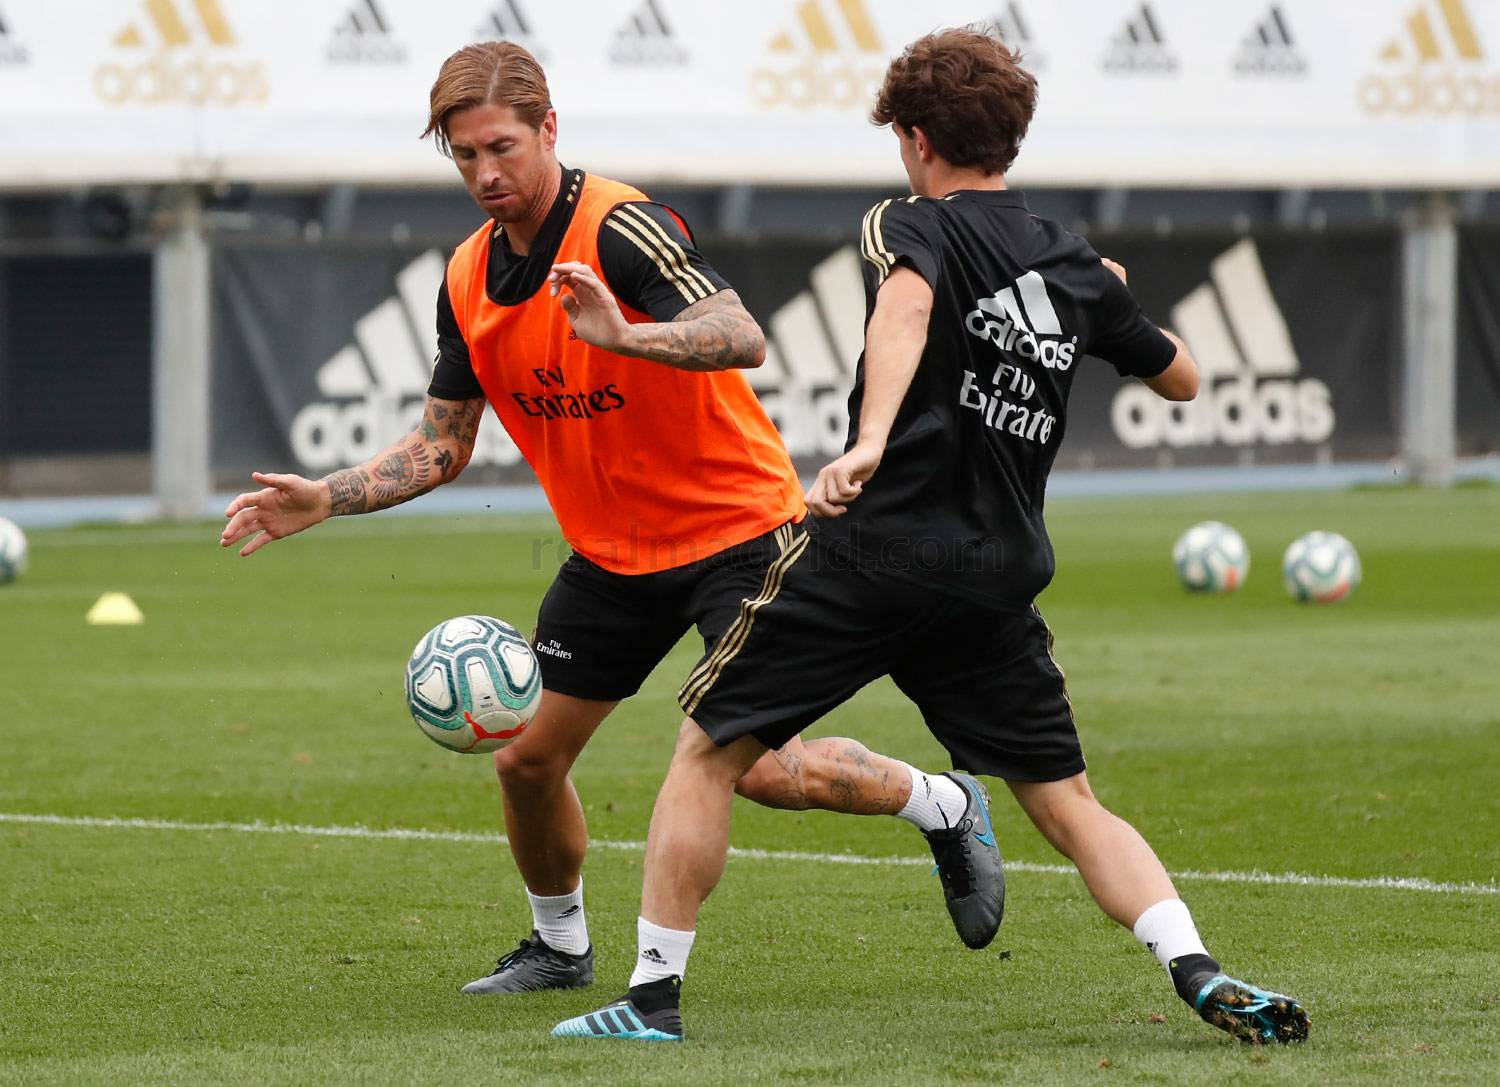 Real Madrid - Entrenamiento del Real Madrid  - 21-08-2019